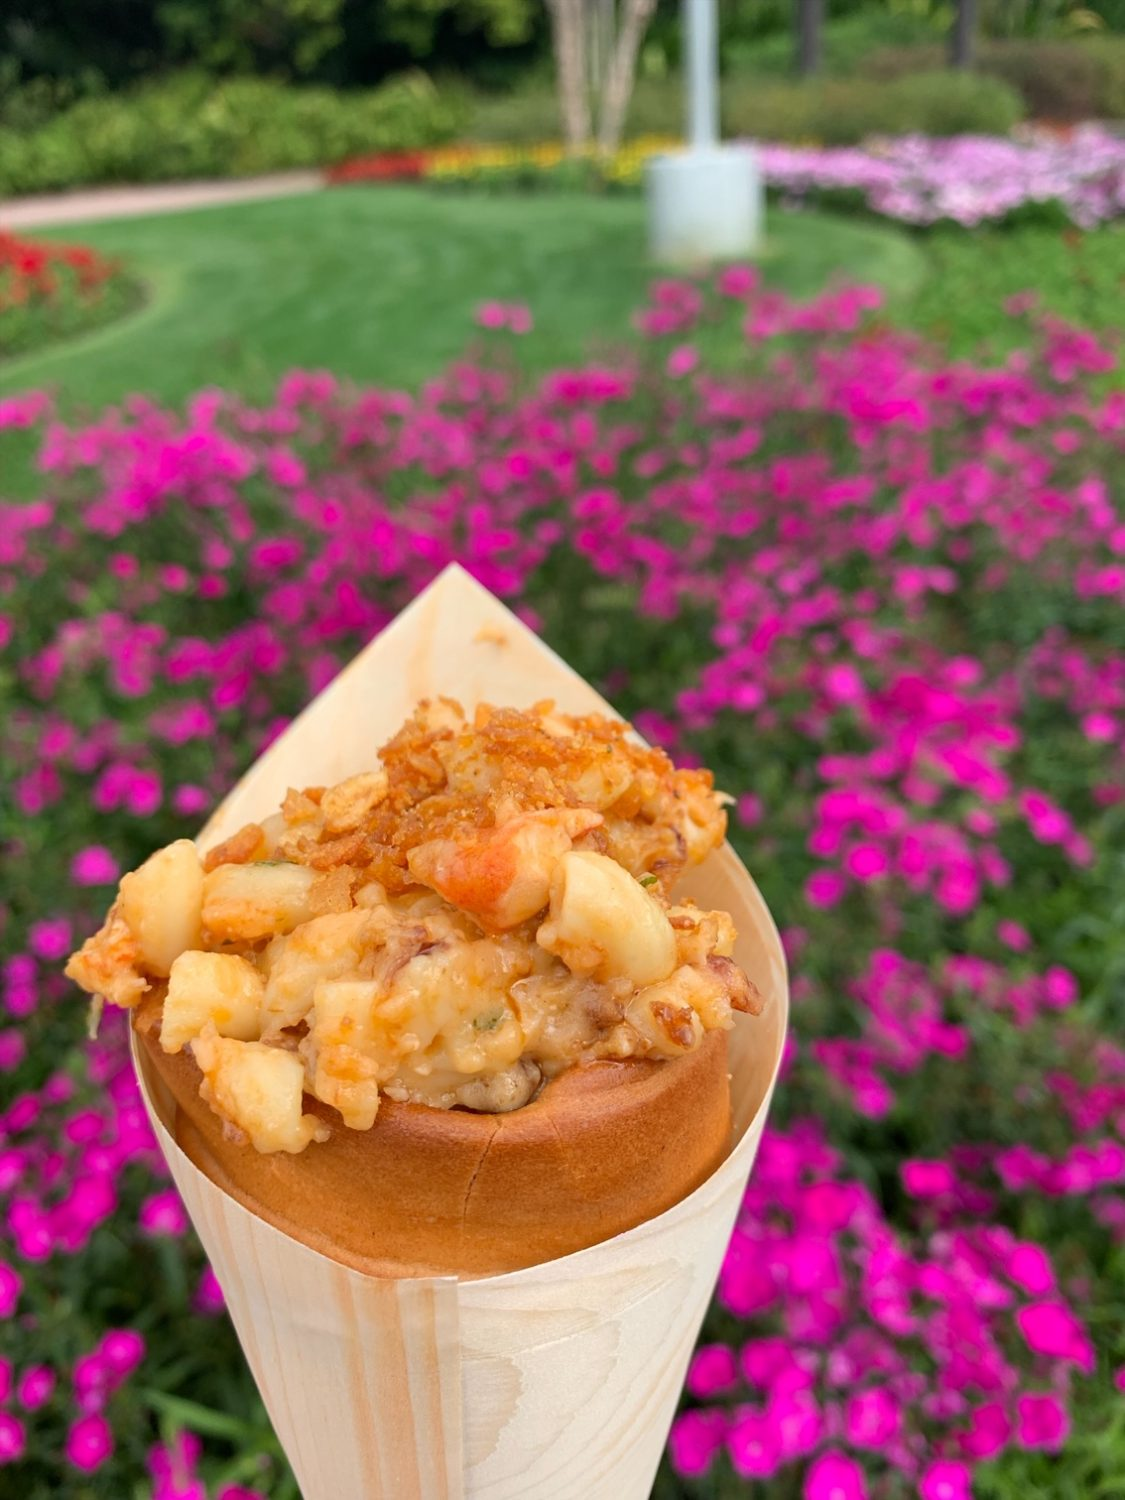 Epcot International Festival of the Arts Lobster Bacon Macaroni & Cheese served in a Warm Bread Cone